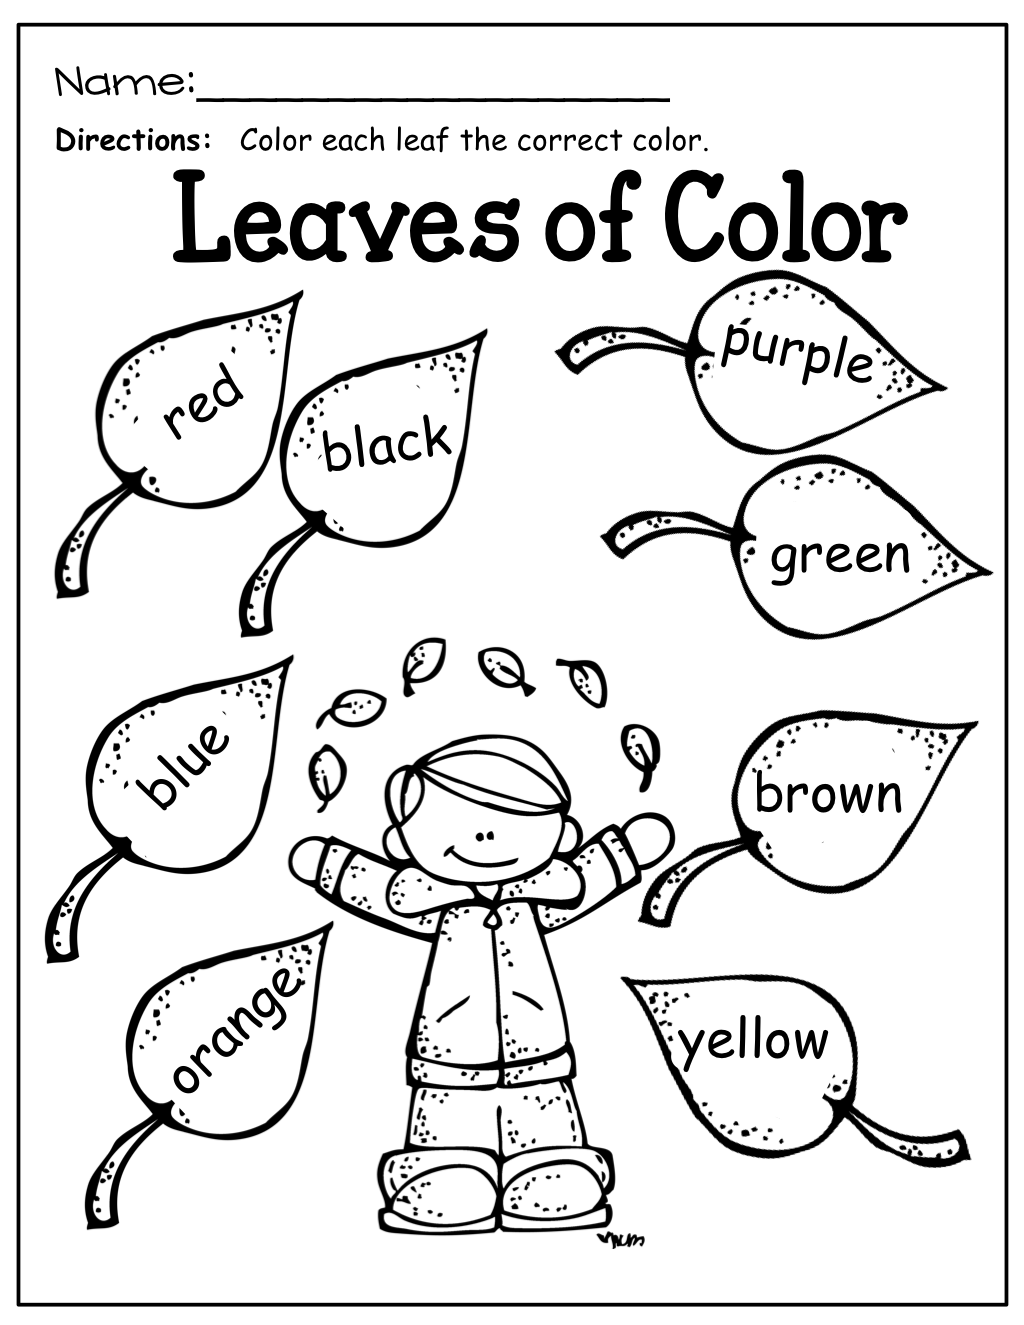 color by color words kinderland collaborative fall preschool preschool worksheets. Black Bedroom Furniture Sets. Home Design Ideas